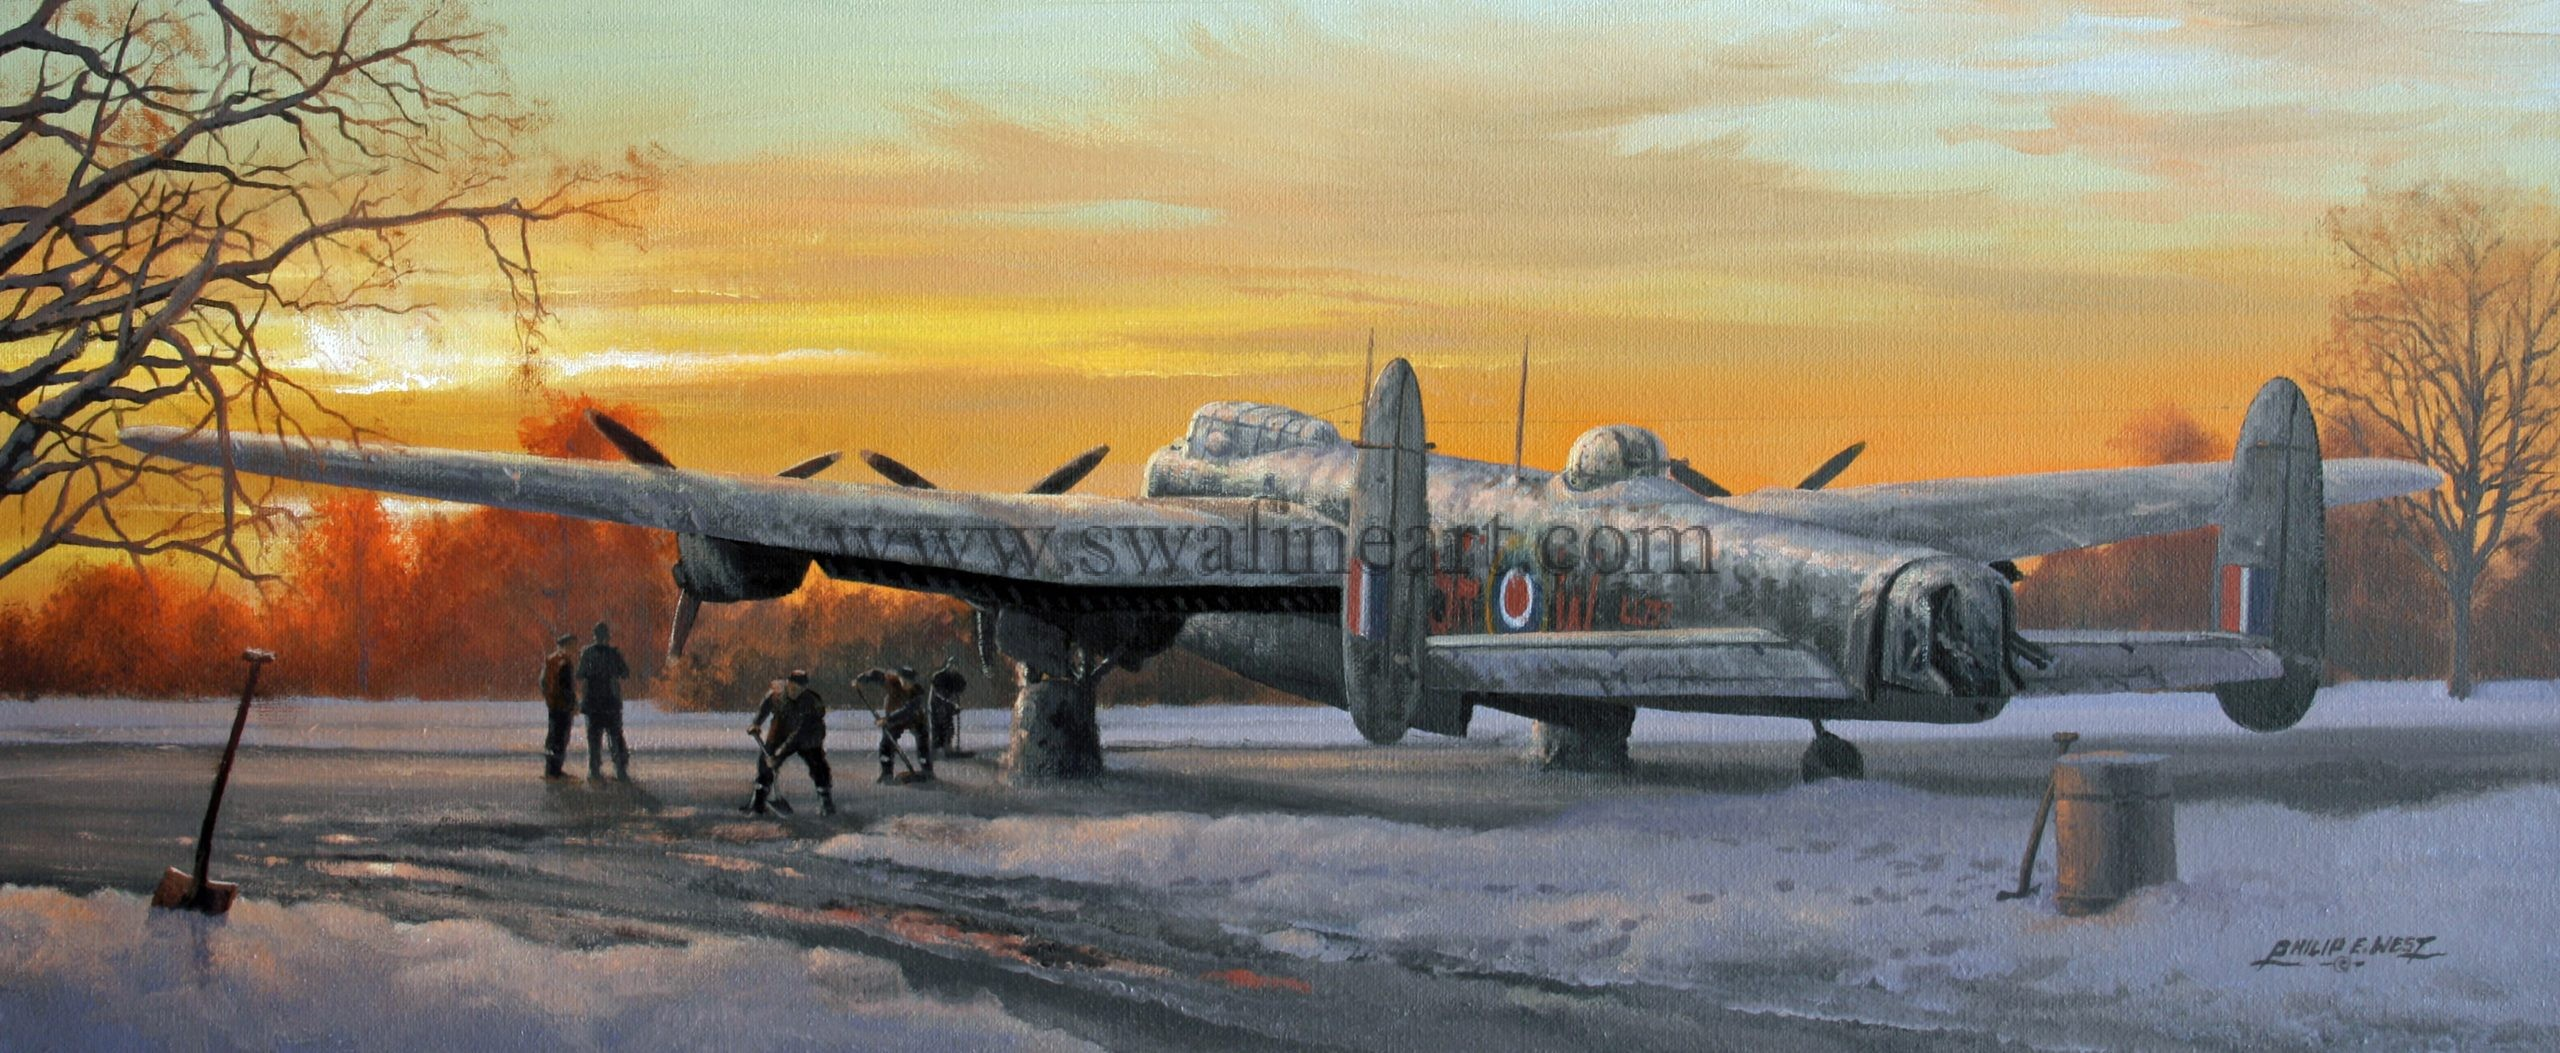 Raf Christmas Cards 2020 Avro Lancaster Winter of 43 Christmas cards RAF Bomber Command